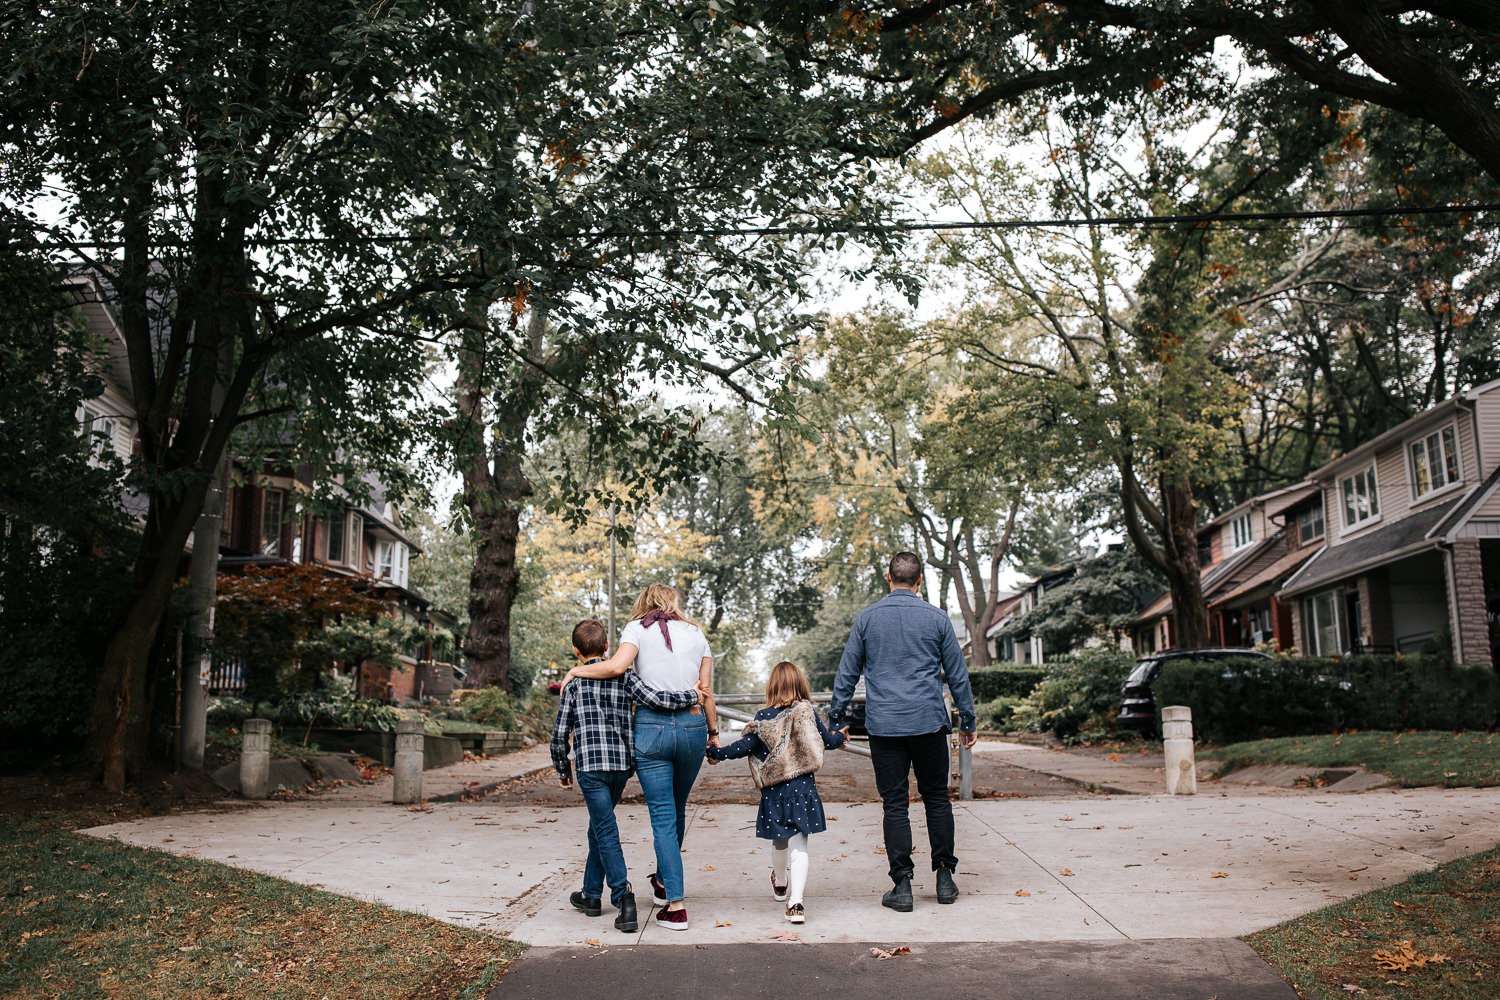 family of 4 walking out of city park towards their home, mom with arm around 9 year old boy, 7 year old girl holding hands with mother and father - Stouffville Lifestyle Photos